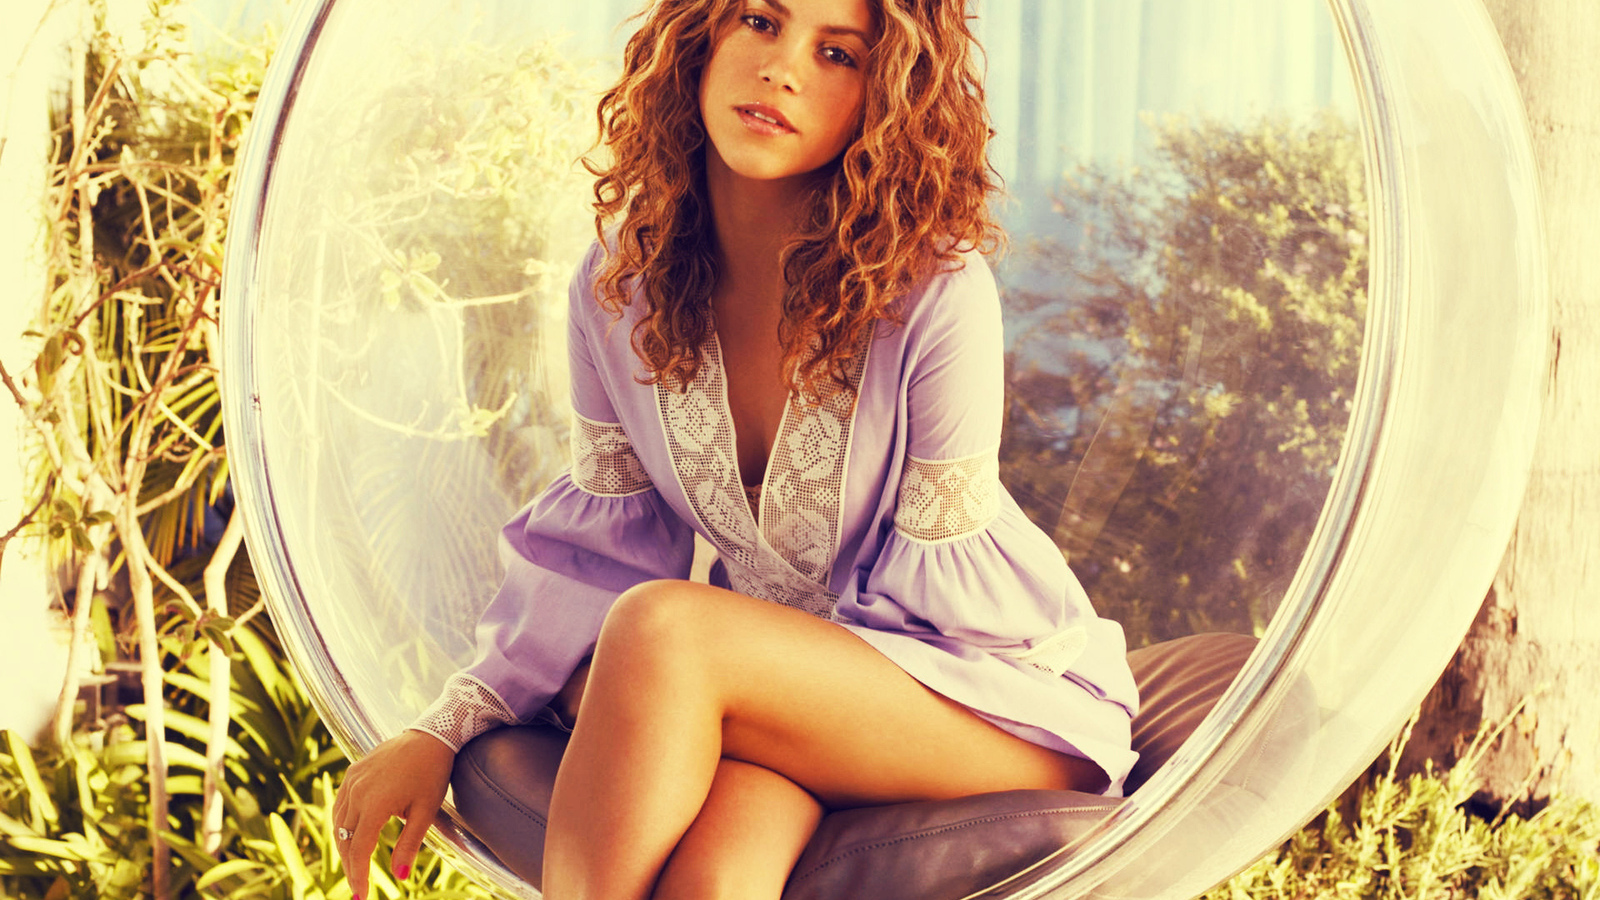 latin, shakira, colombia, singer, colombian, chair, music